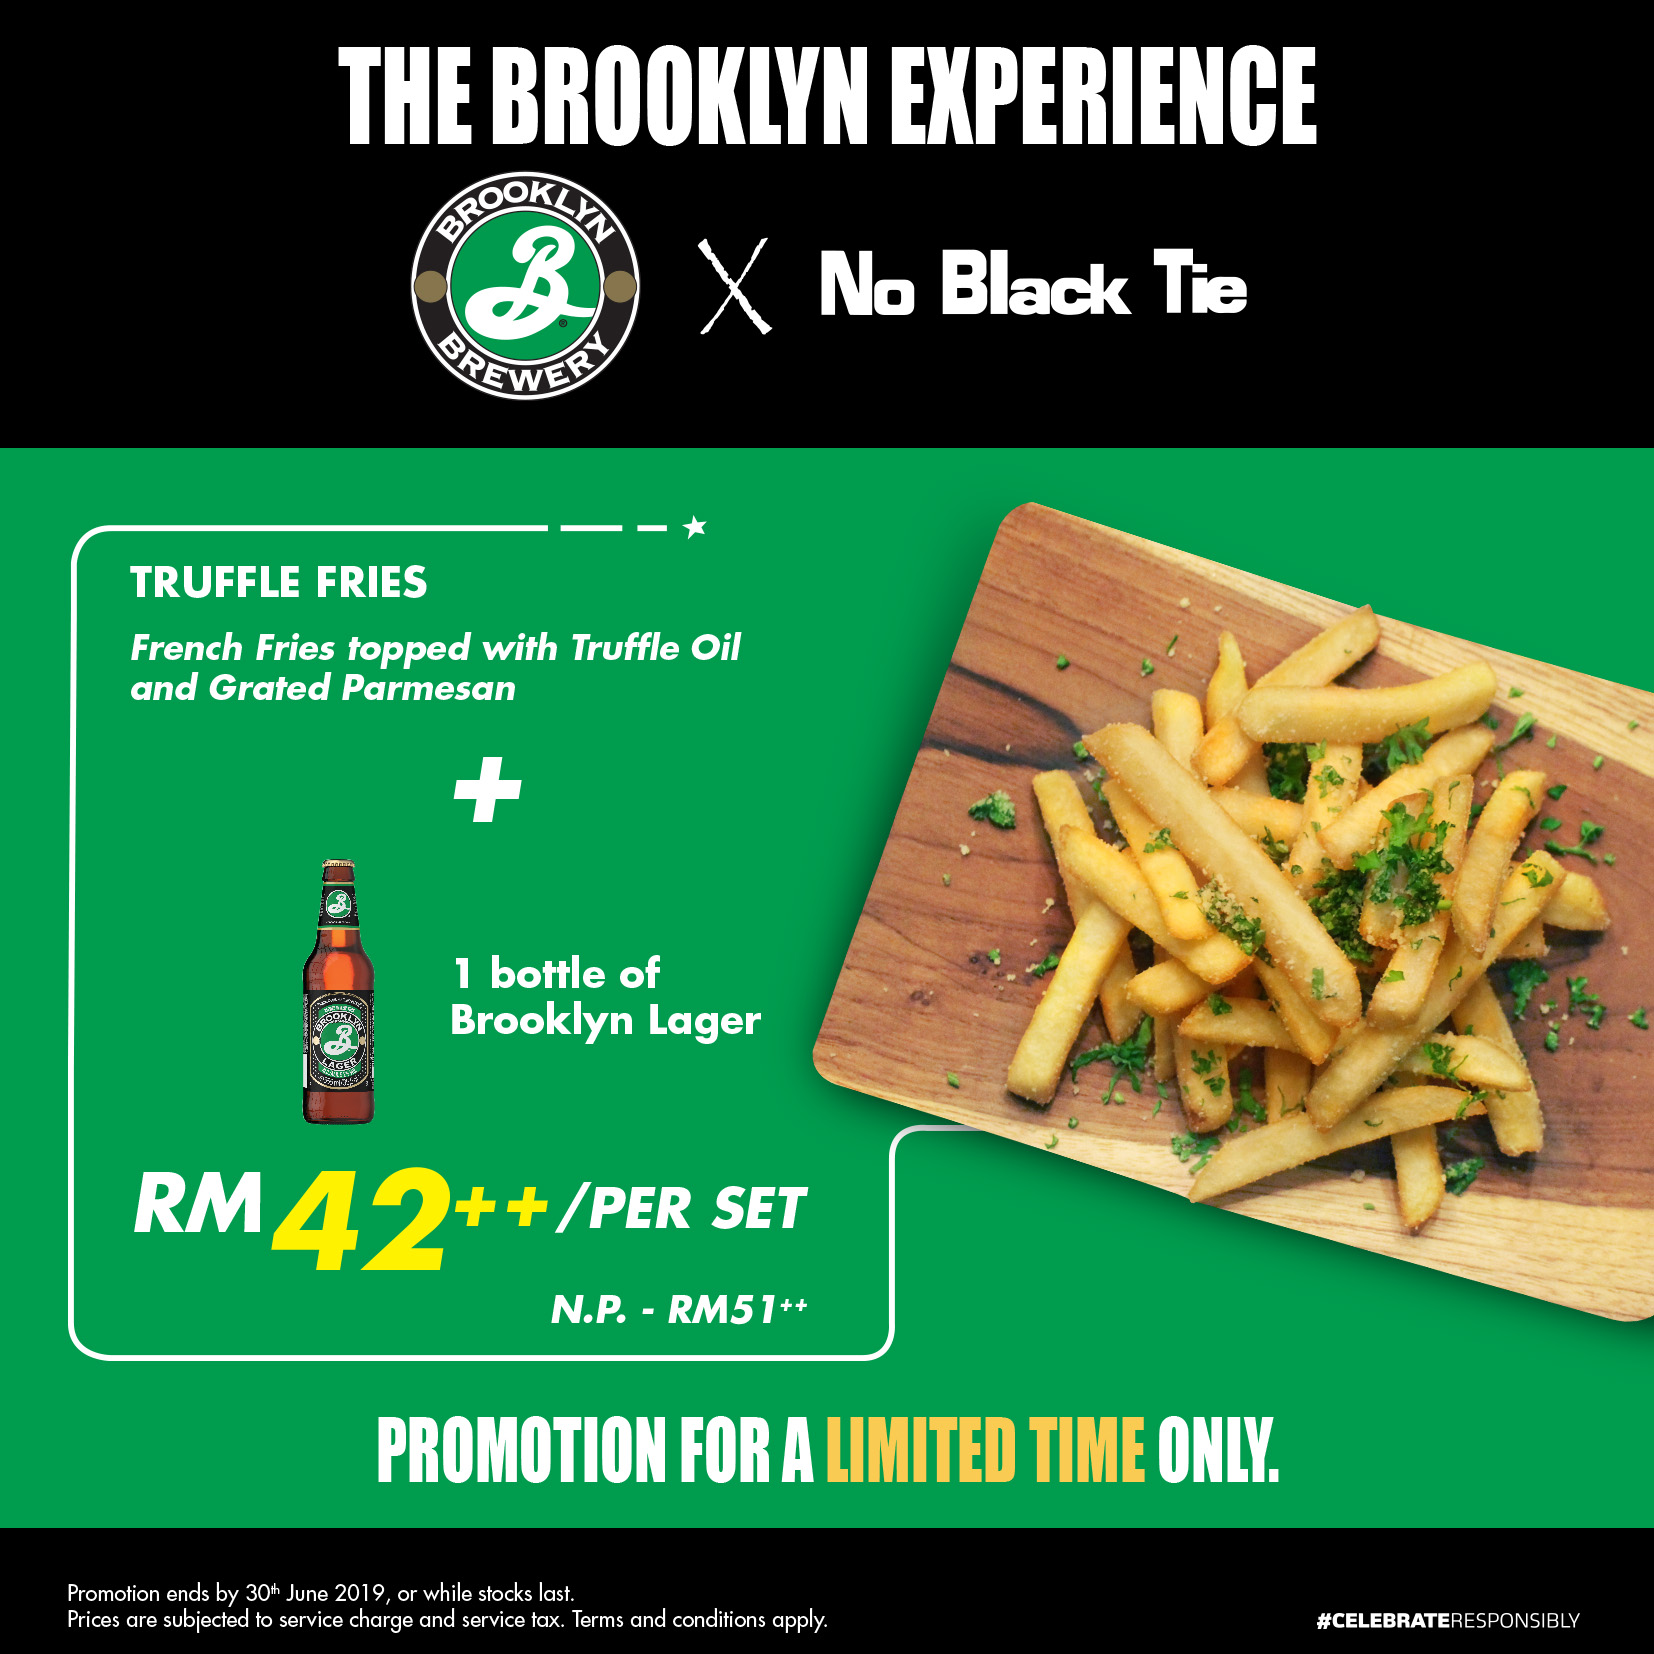 https://i2.wp.com/www.noblacktie.com.my/web/wp-content/uploads/2019/04/Brooklyn-NoBlackTie_FB-Posting_TRUFFLE-FRIES_1654Wx1654Hpx_V1_FA-REF.jpg?resize=1170%2C2319&ssl=1